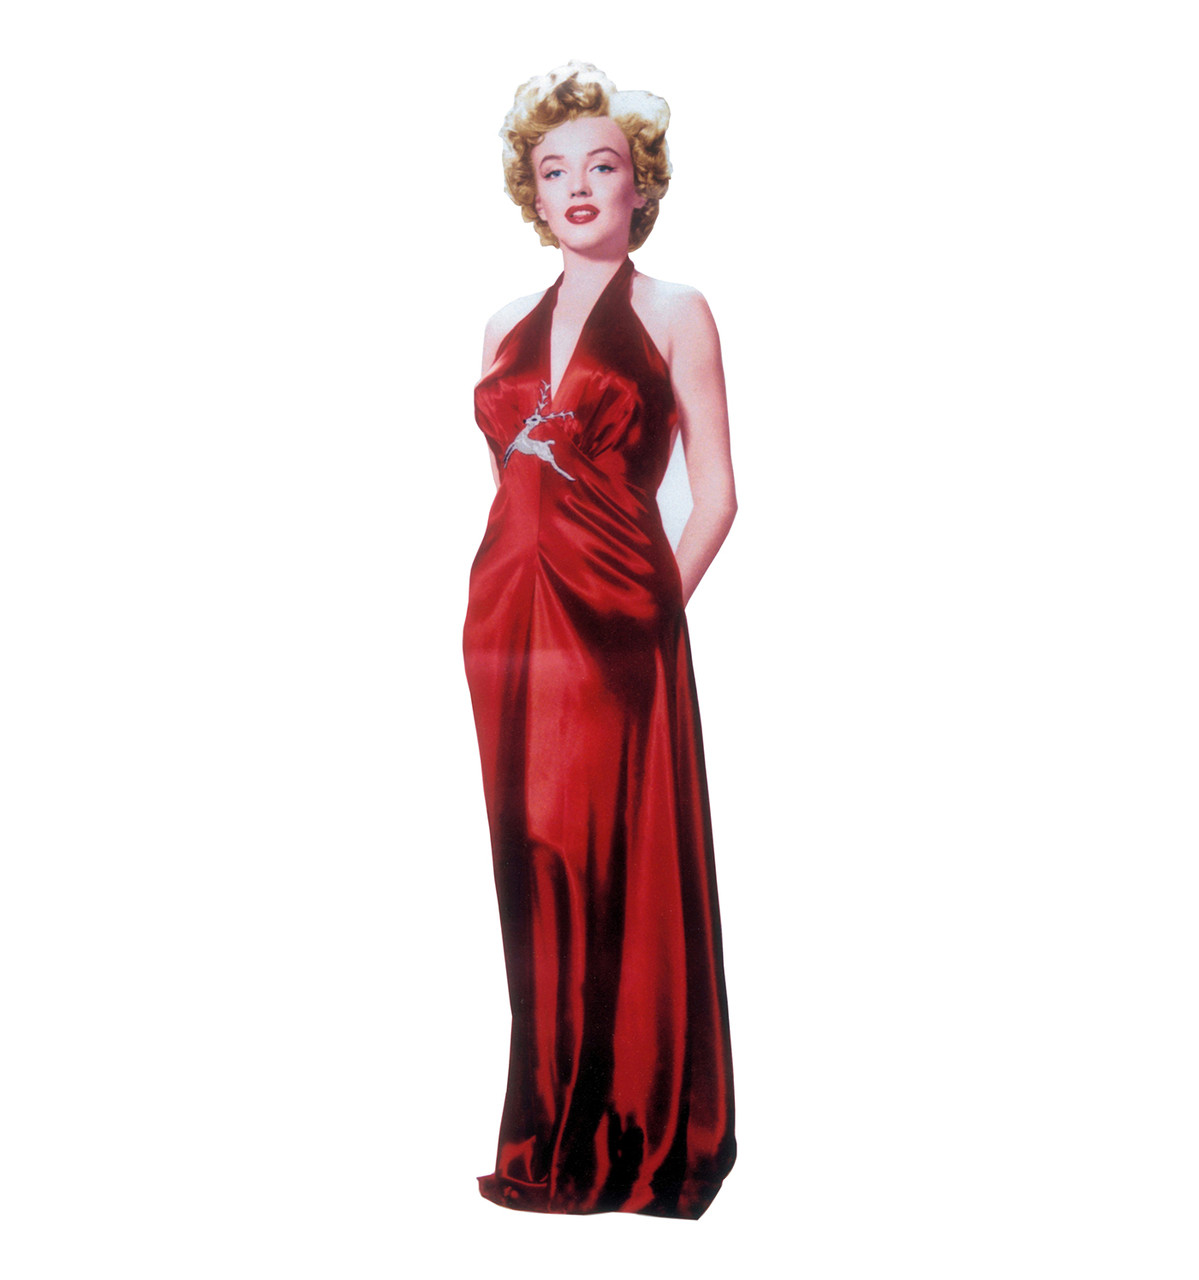 Life-size Marilyn Monroe-Red Gown Cardboard Standup